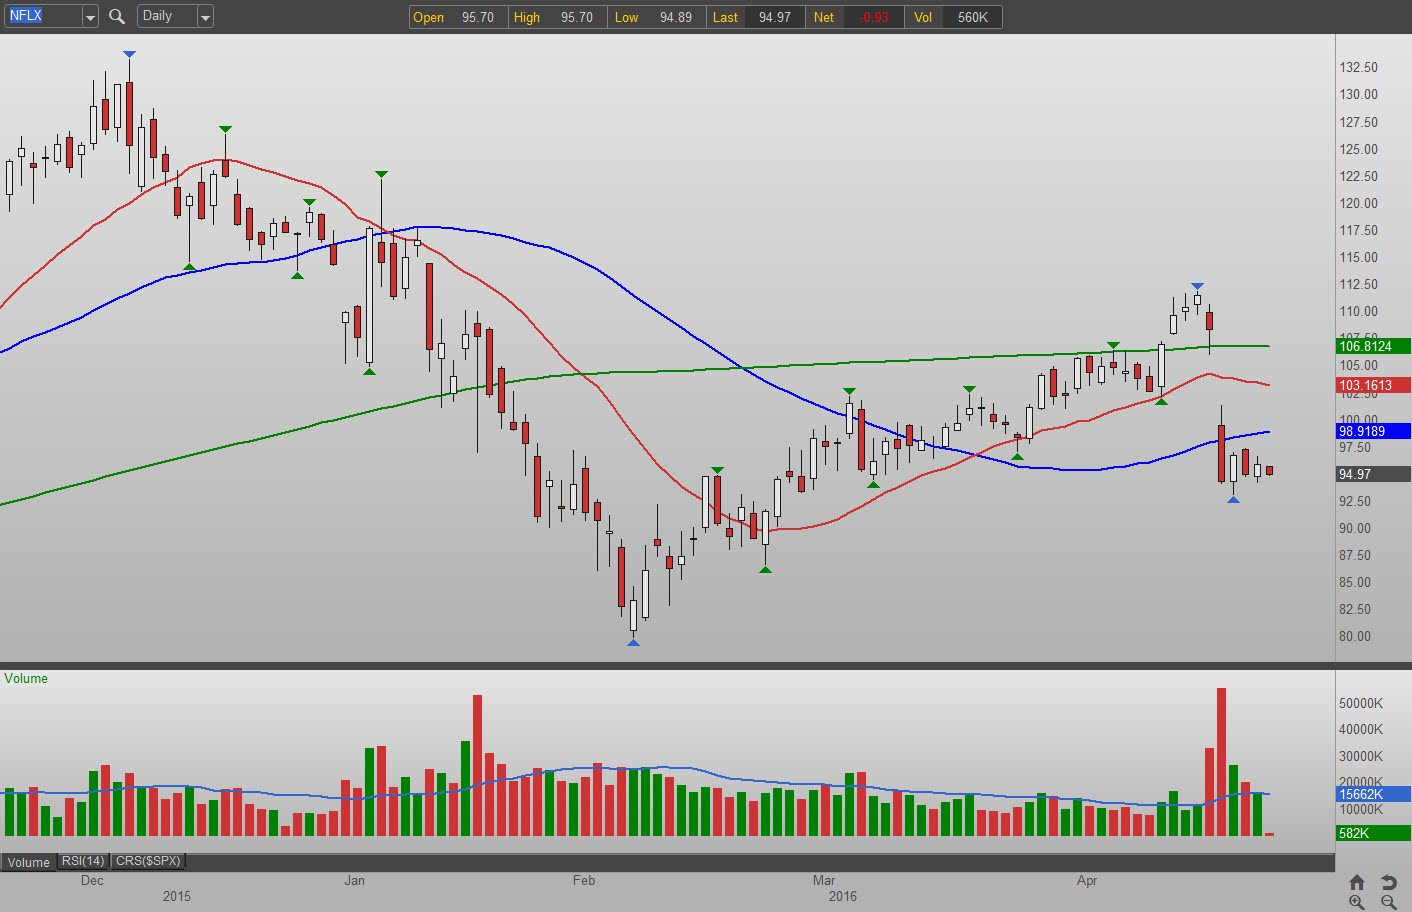 3 stocks that are becoming bear chow  u2013 ibm mcd nflx